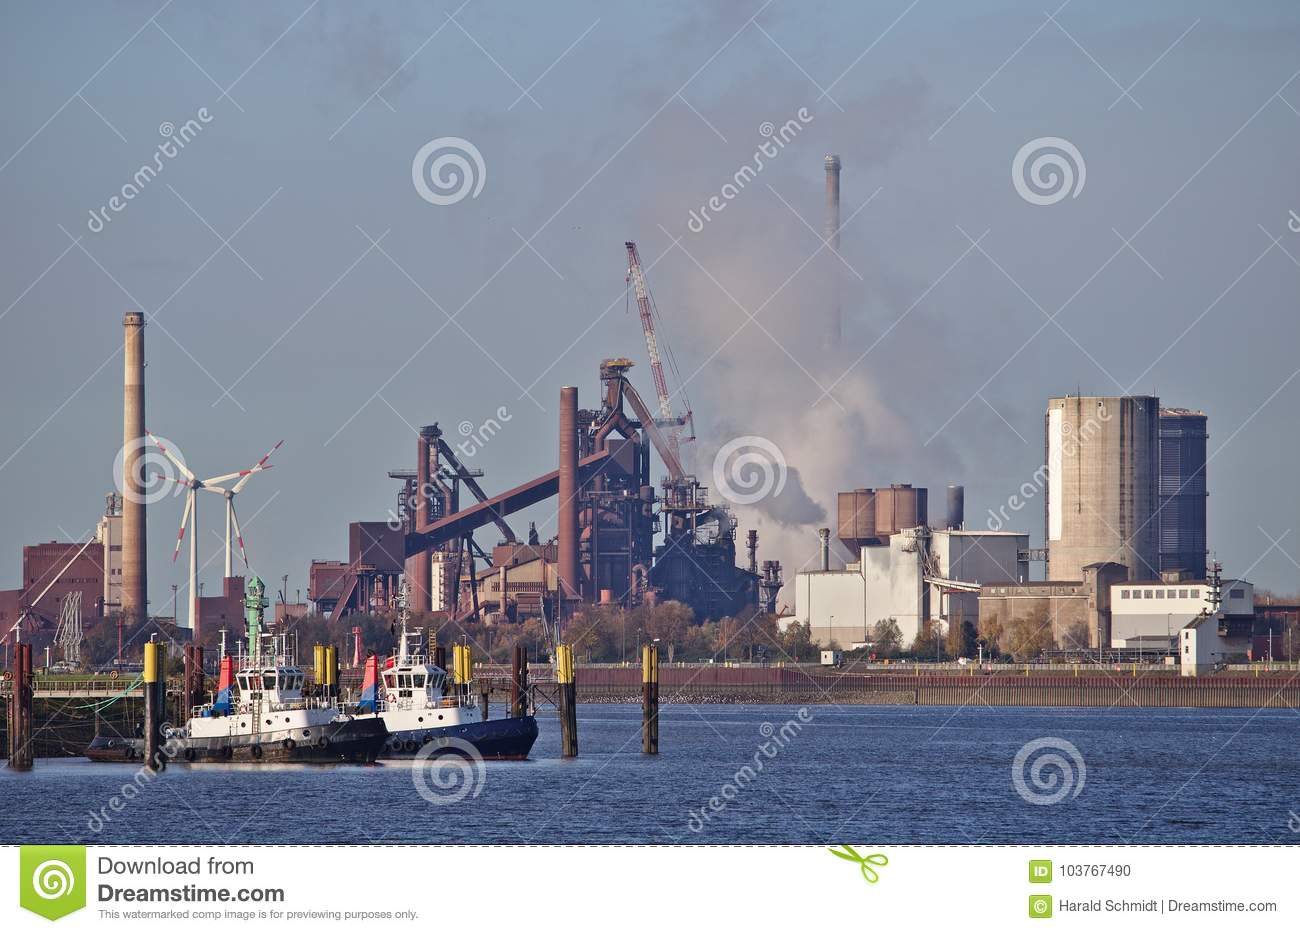 Two tug boats at their moorings with huge steel plant emitting clouds of smoke and wind power stations in the background